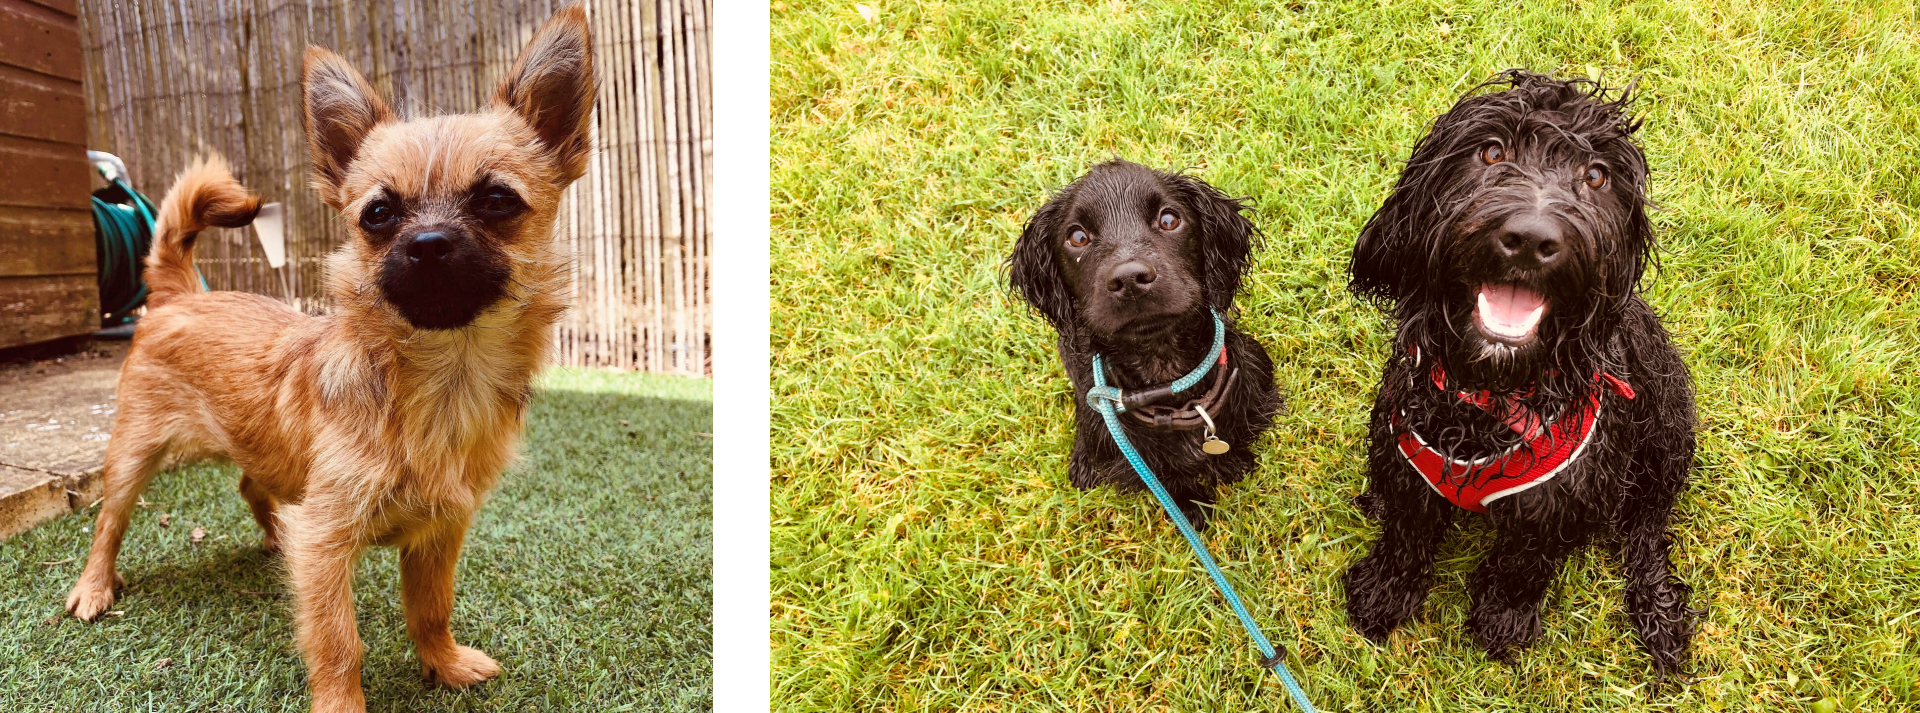 Waggy Tails of Wymondham: Meeka and Odin & Ainsley